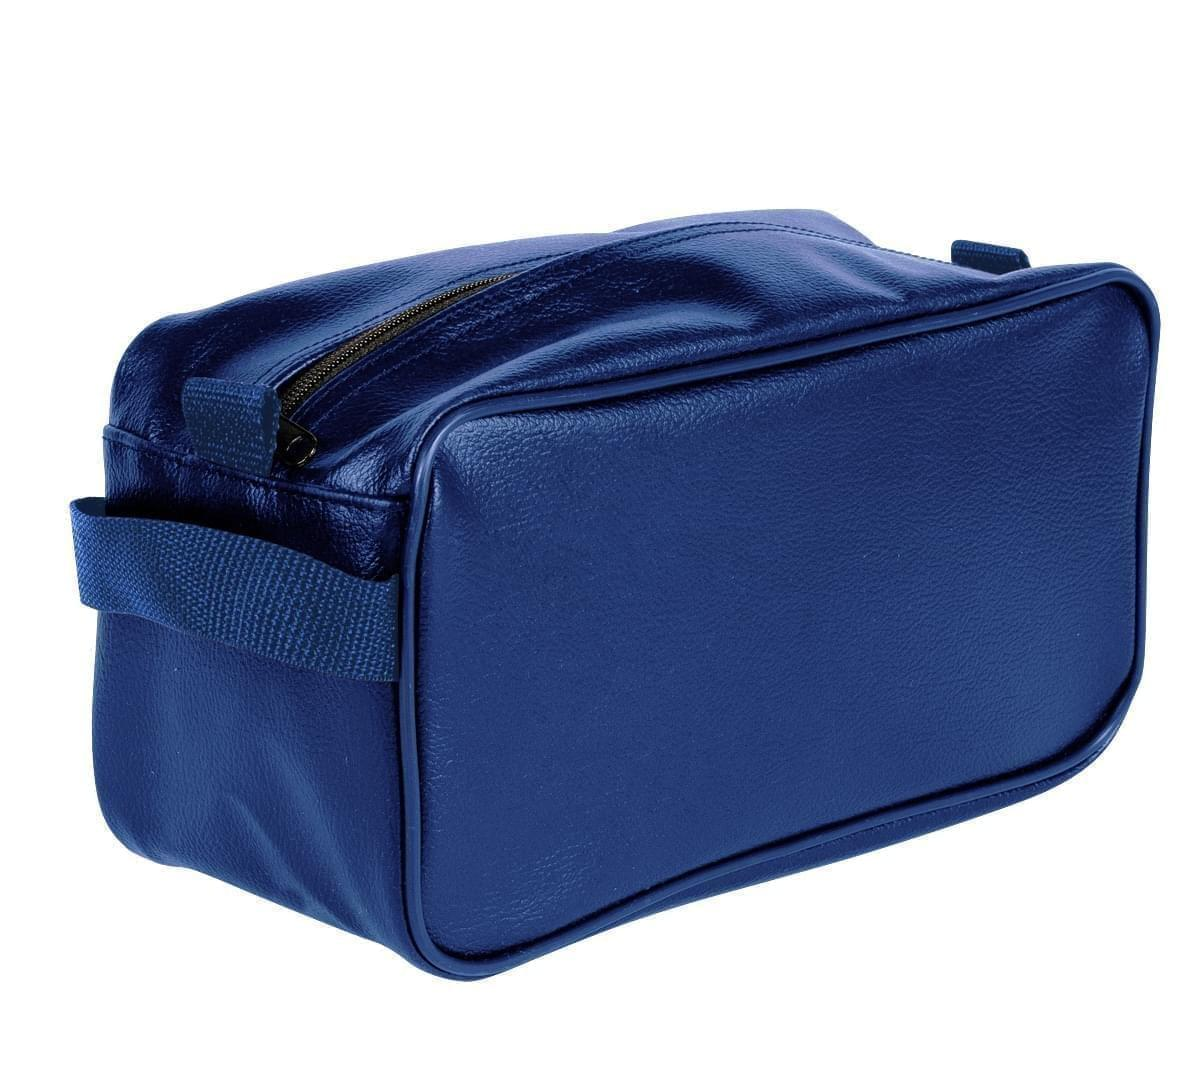 USA Made Cosmetic & Toiletry Cases, Royal Blue-Royal Blue, 3000996-A03